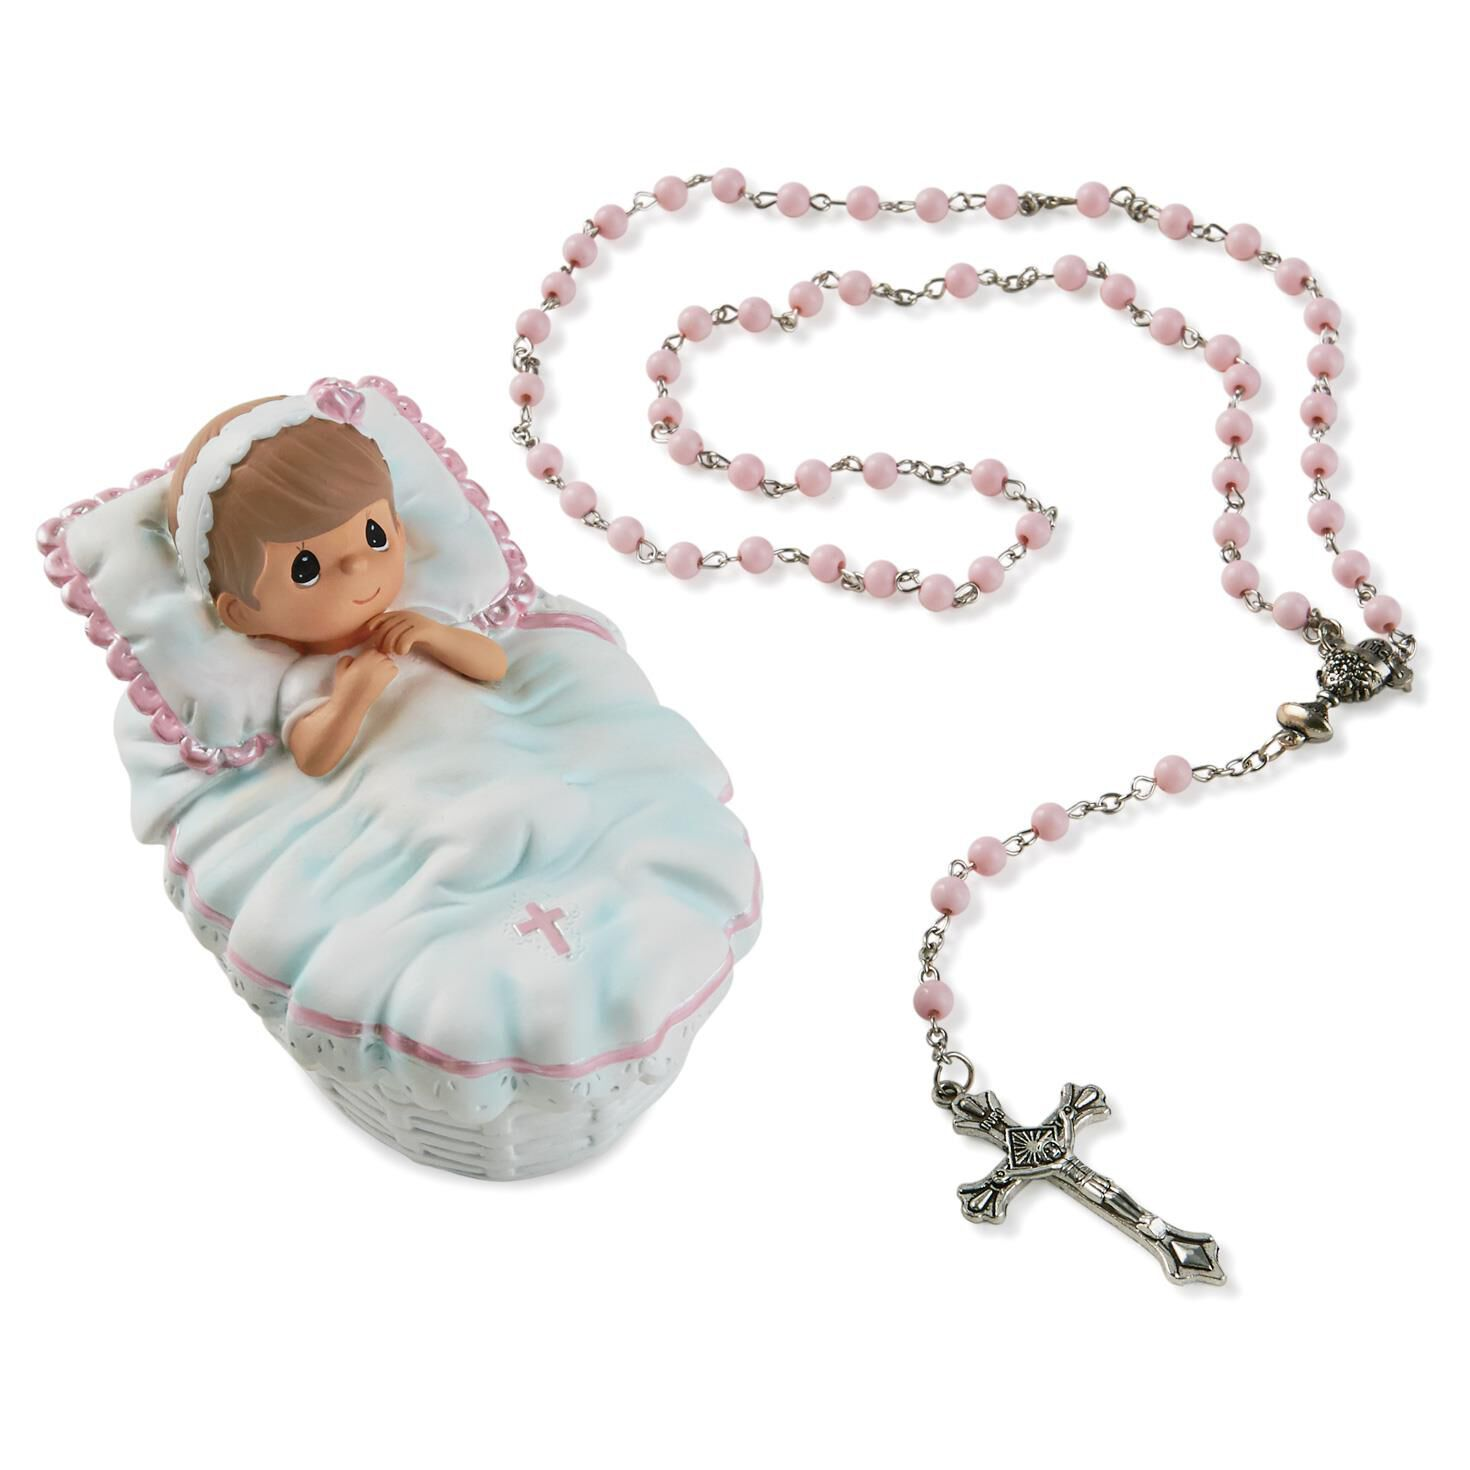 Baptism Ornament Cross Ornament Girl Baptism Ornament Girl: Precious Moments® Baptism Girl Box With Pink Rosary